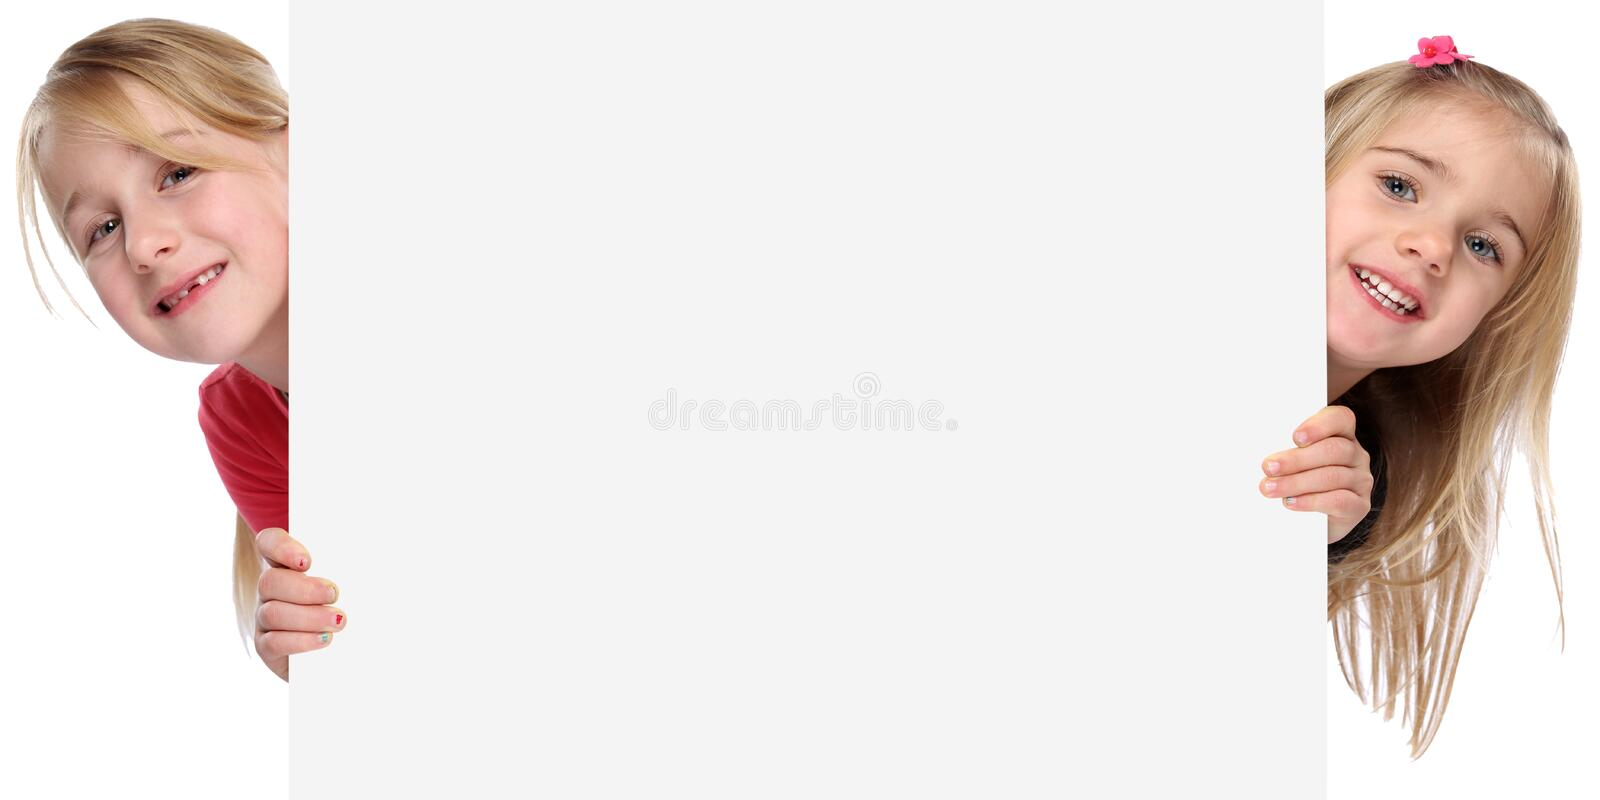 Children kids smiling young girls copyspace copy space marketing. Empty blank sign isolated on a white background royalty free stock image